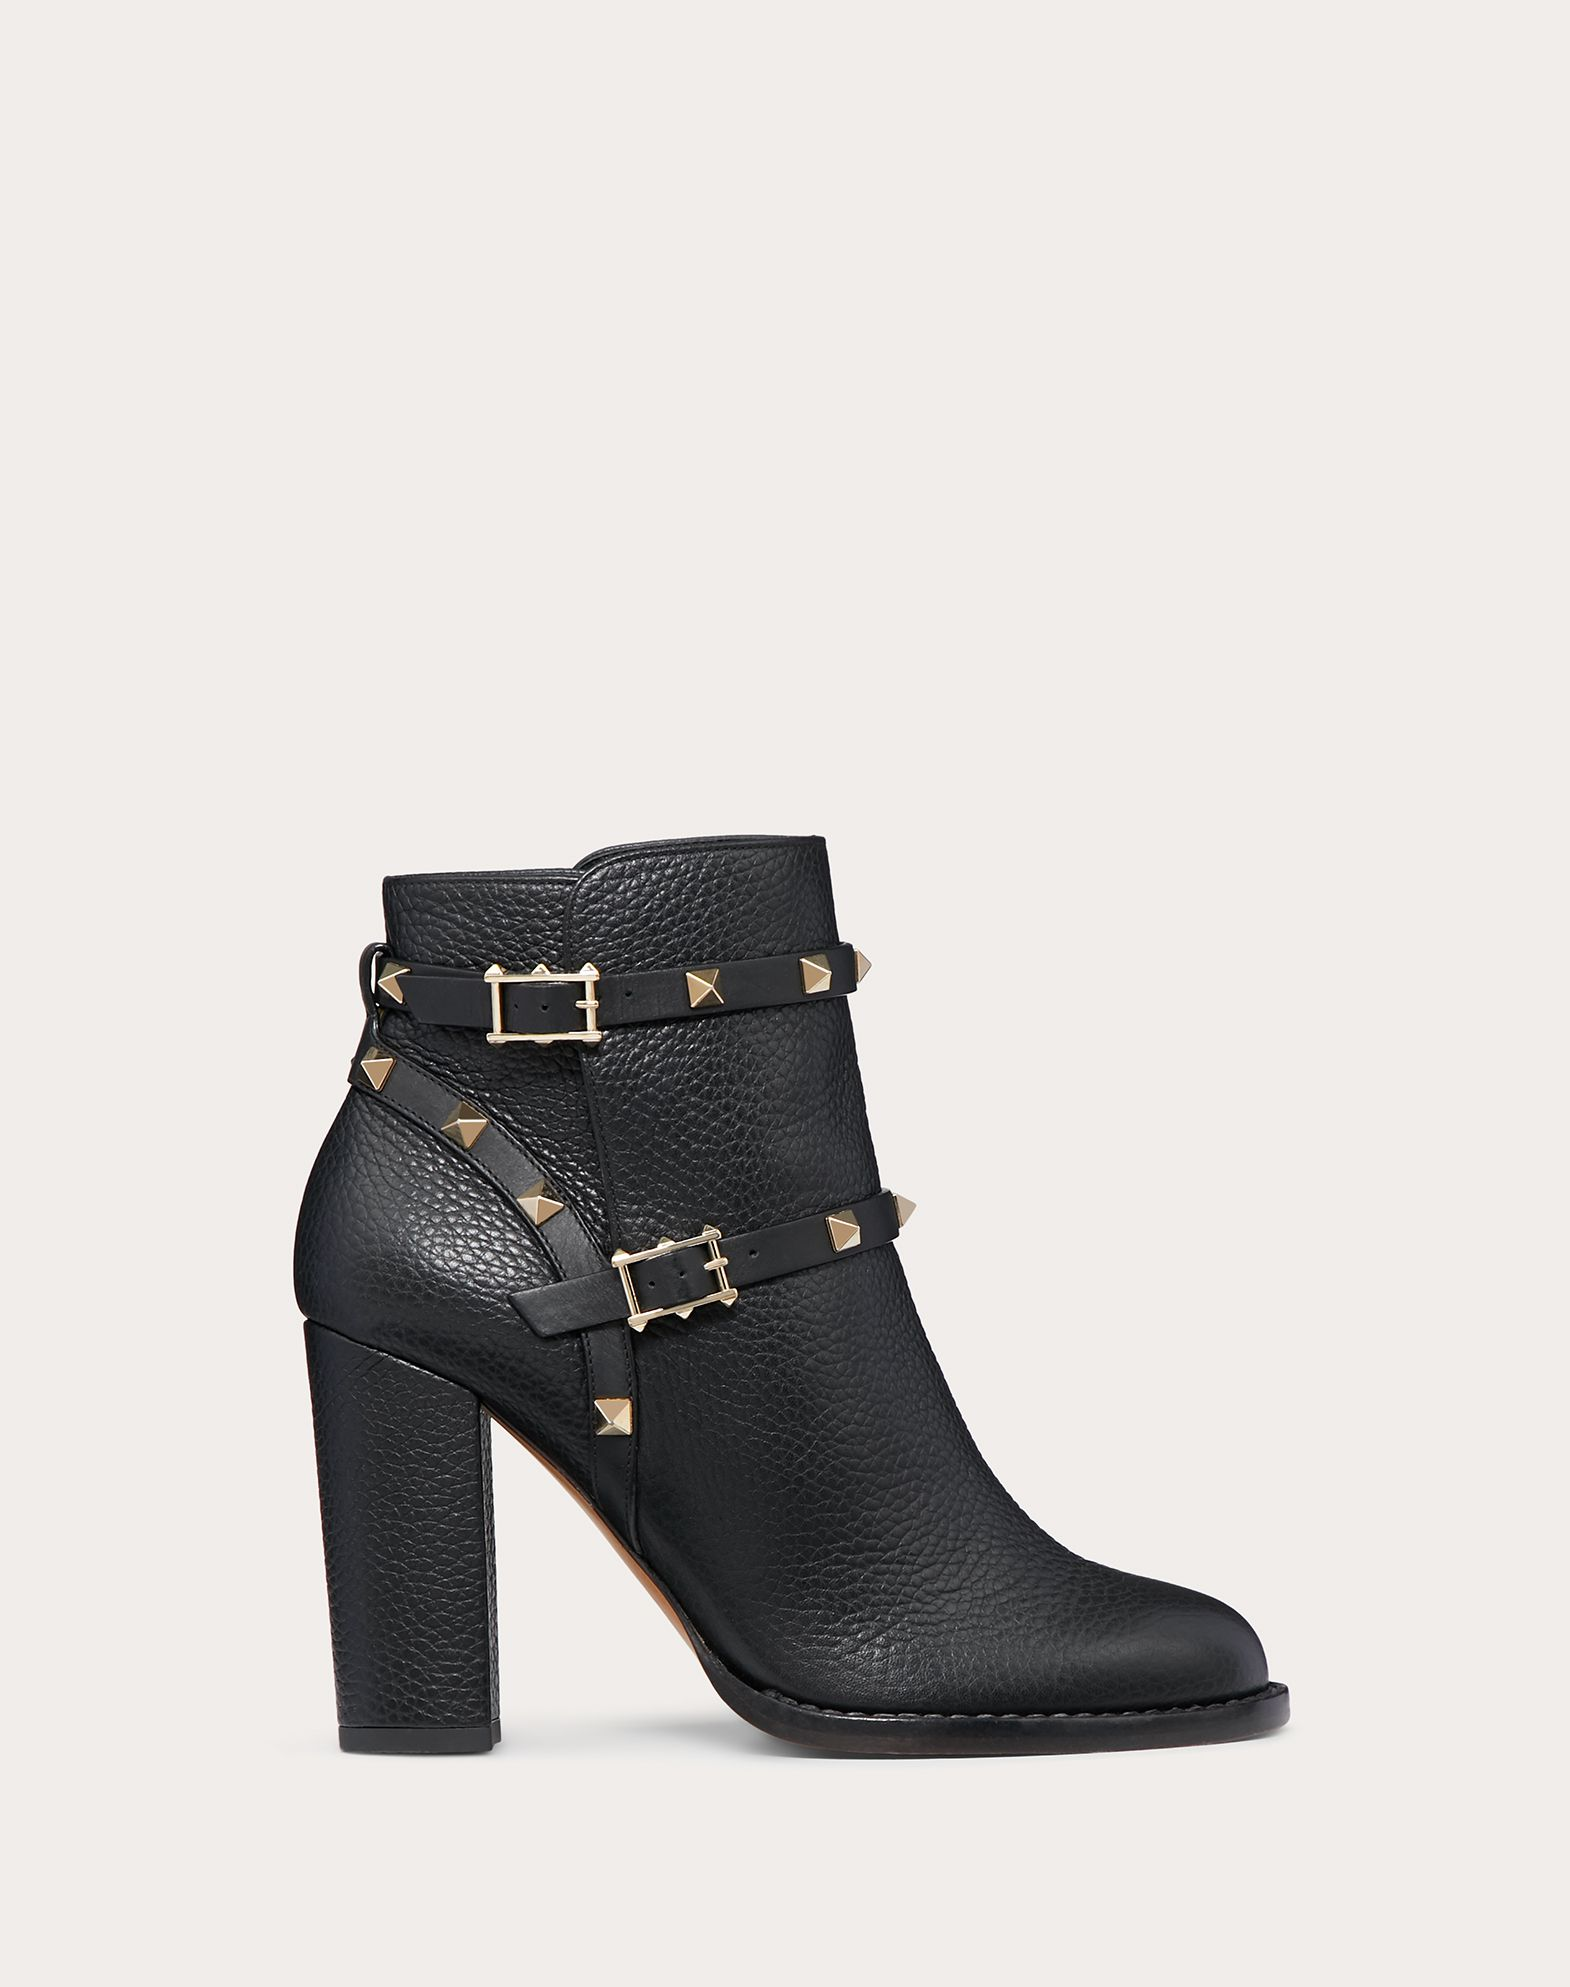 Grain Calfskin Leather Rockstud Bootie 100mm